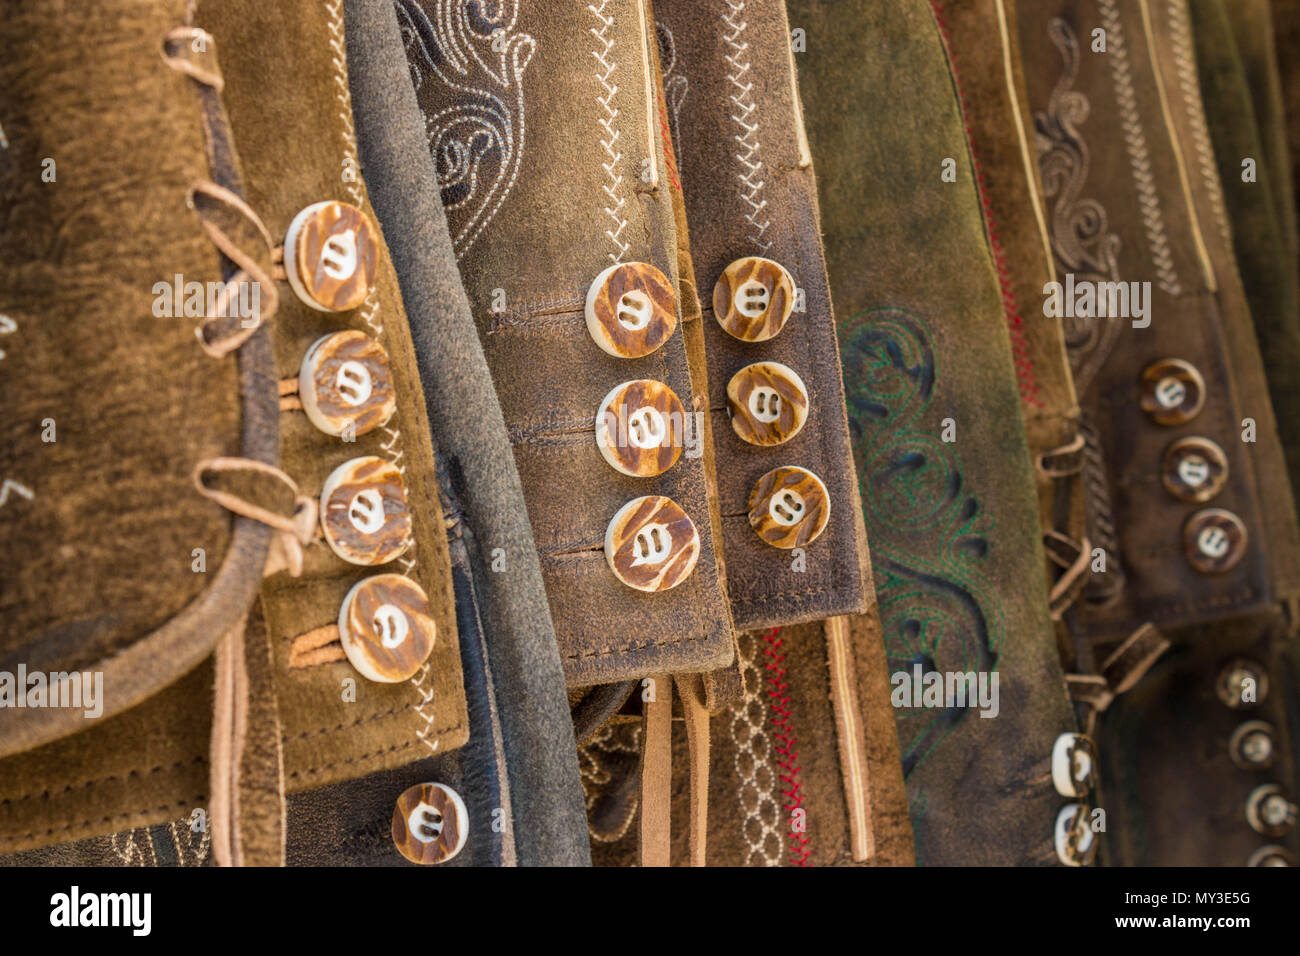 Traditional austrian and bavarian lederhosen (leather pants). Various lederhosen hanging in a row. Closeup of buttons. - Stock Image